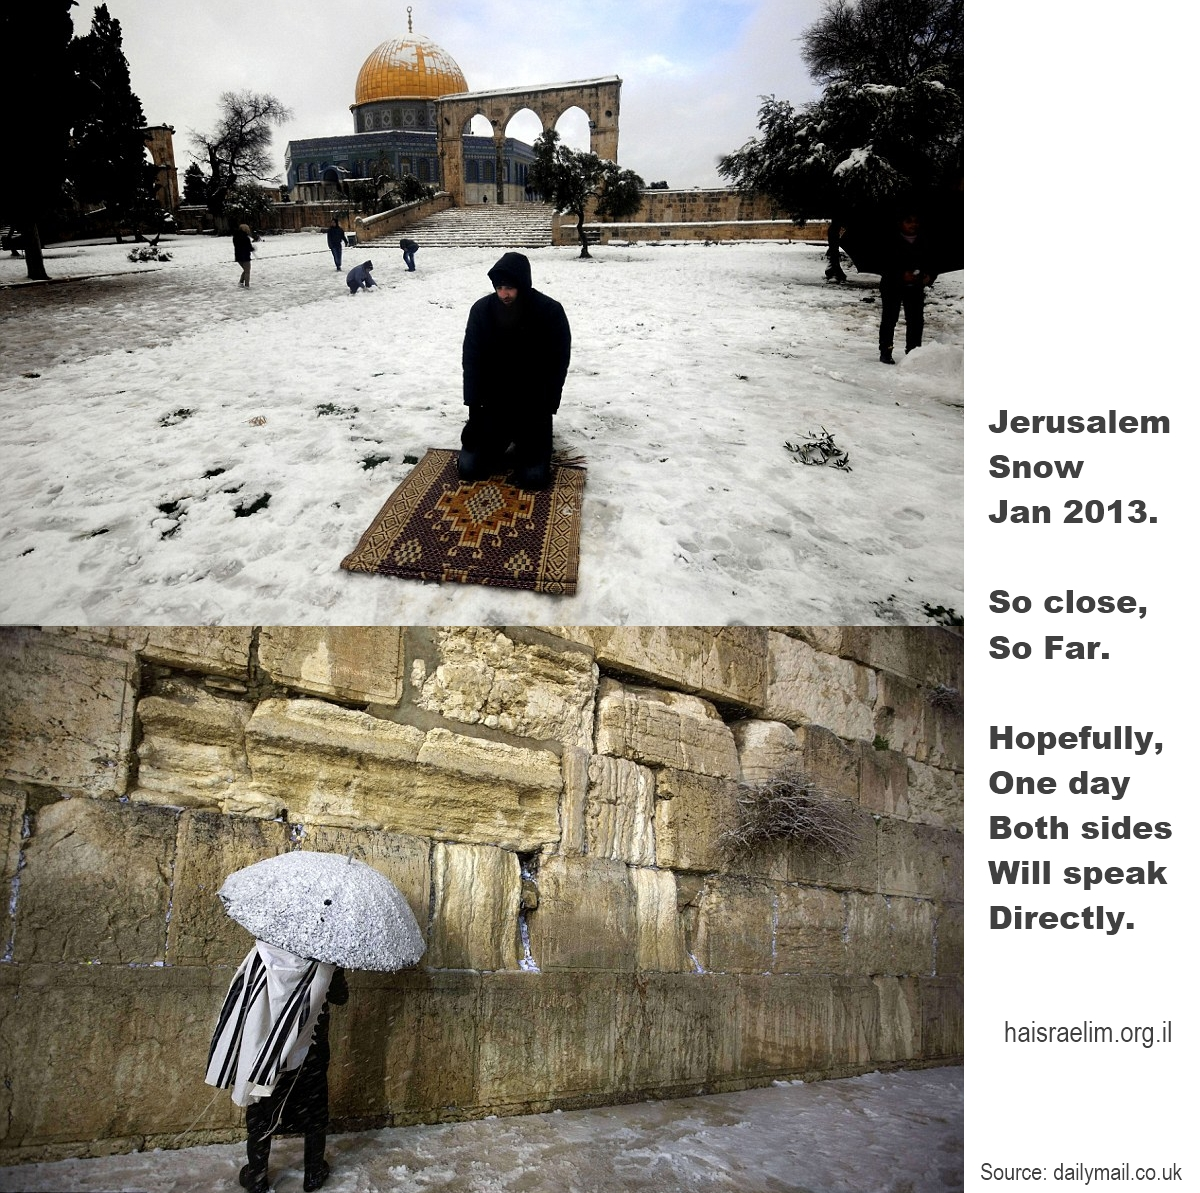 Jerusalem Snow - So Close, So Far